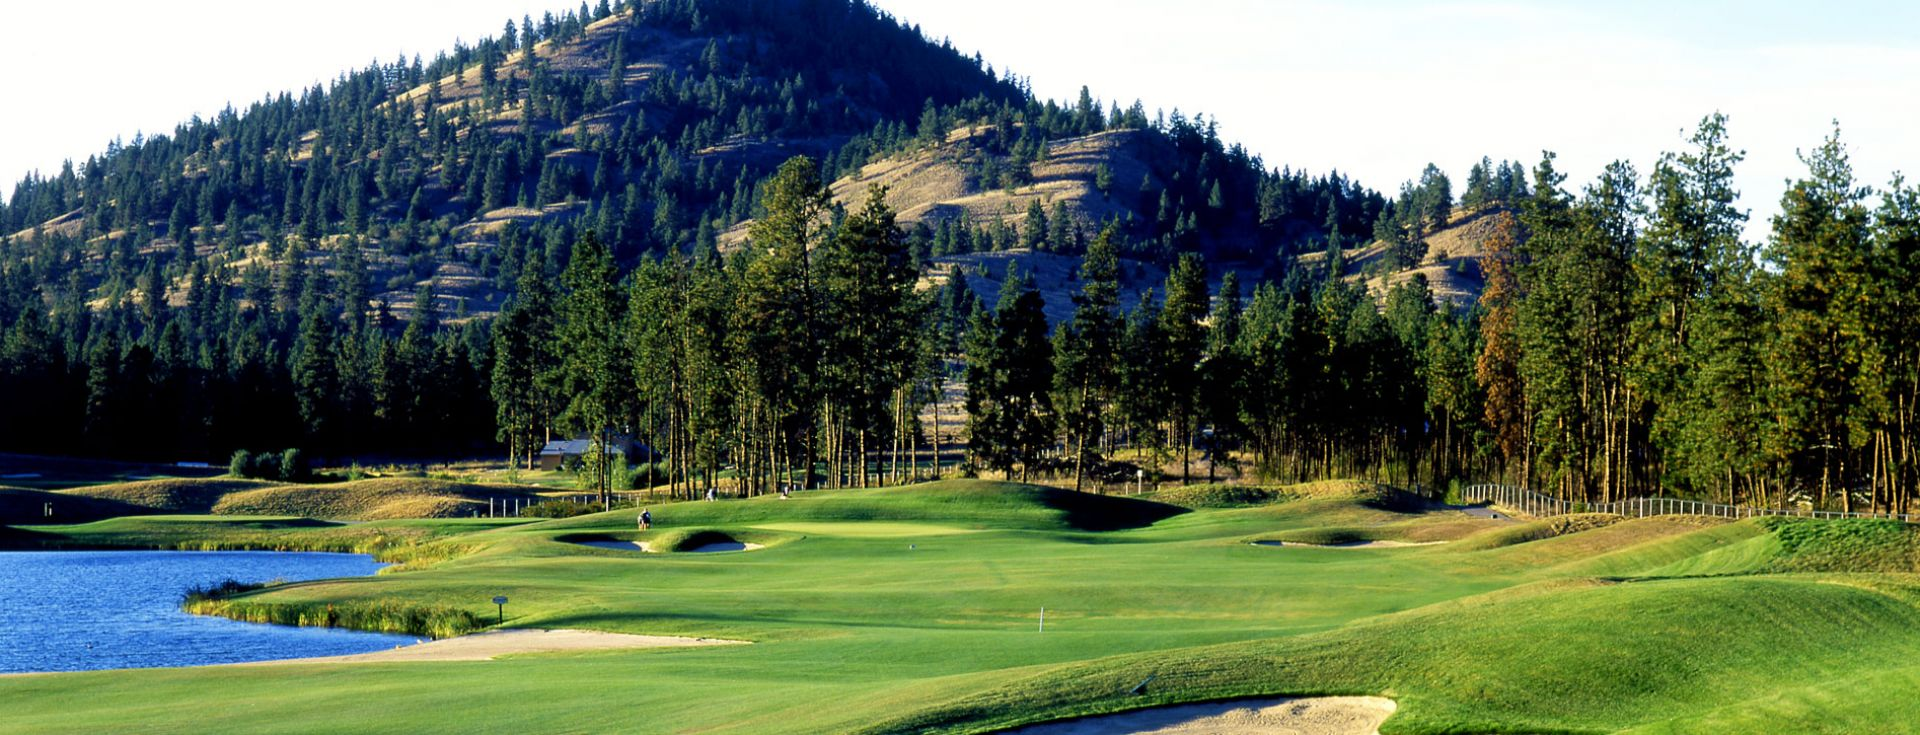 Hotels In West Kelowna Bc